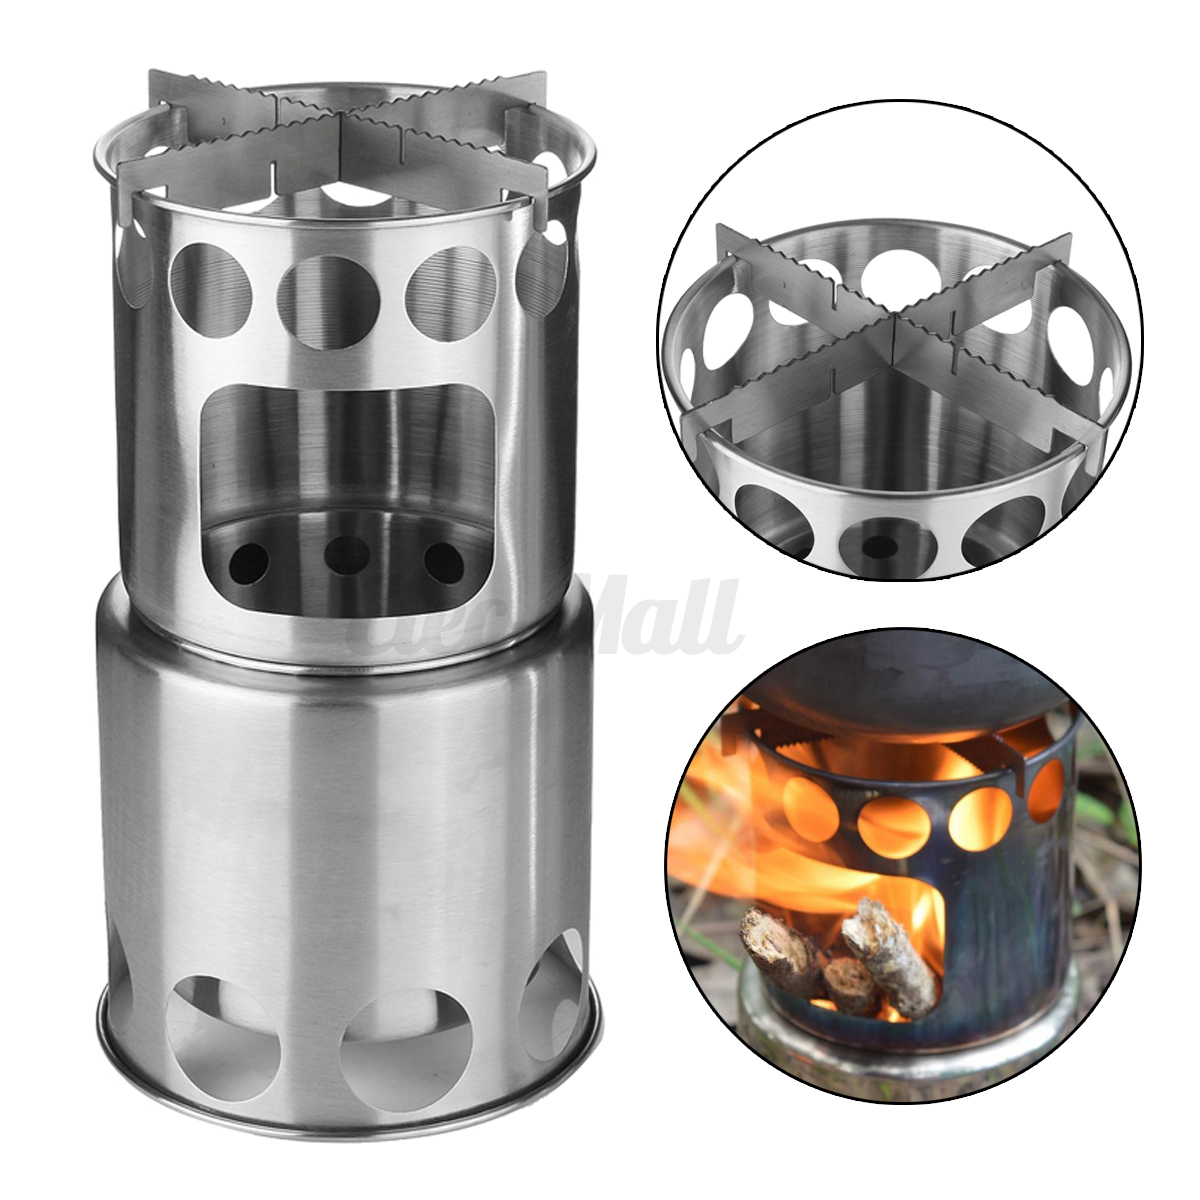 Stainless Steel Outdoor Picnic Camping Backpacking Cooking Wood ...